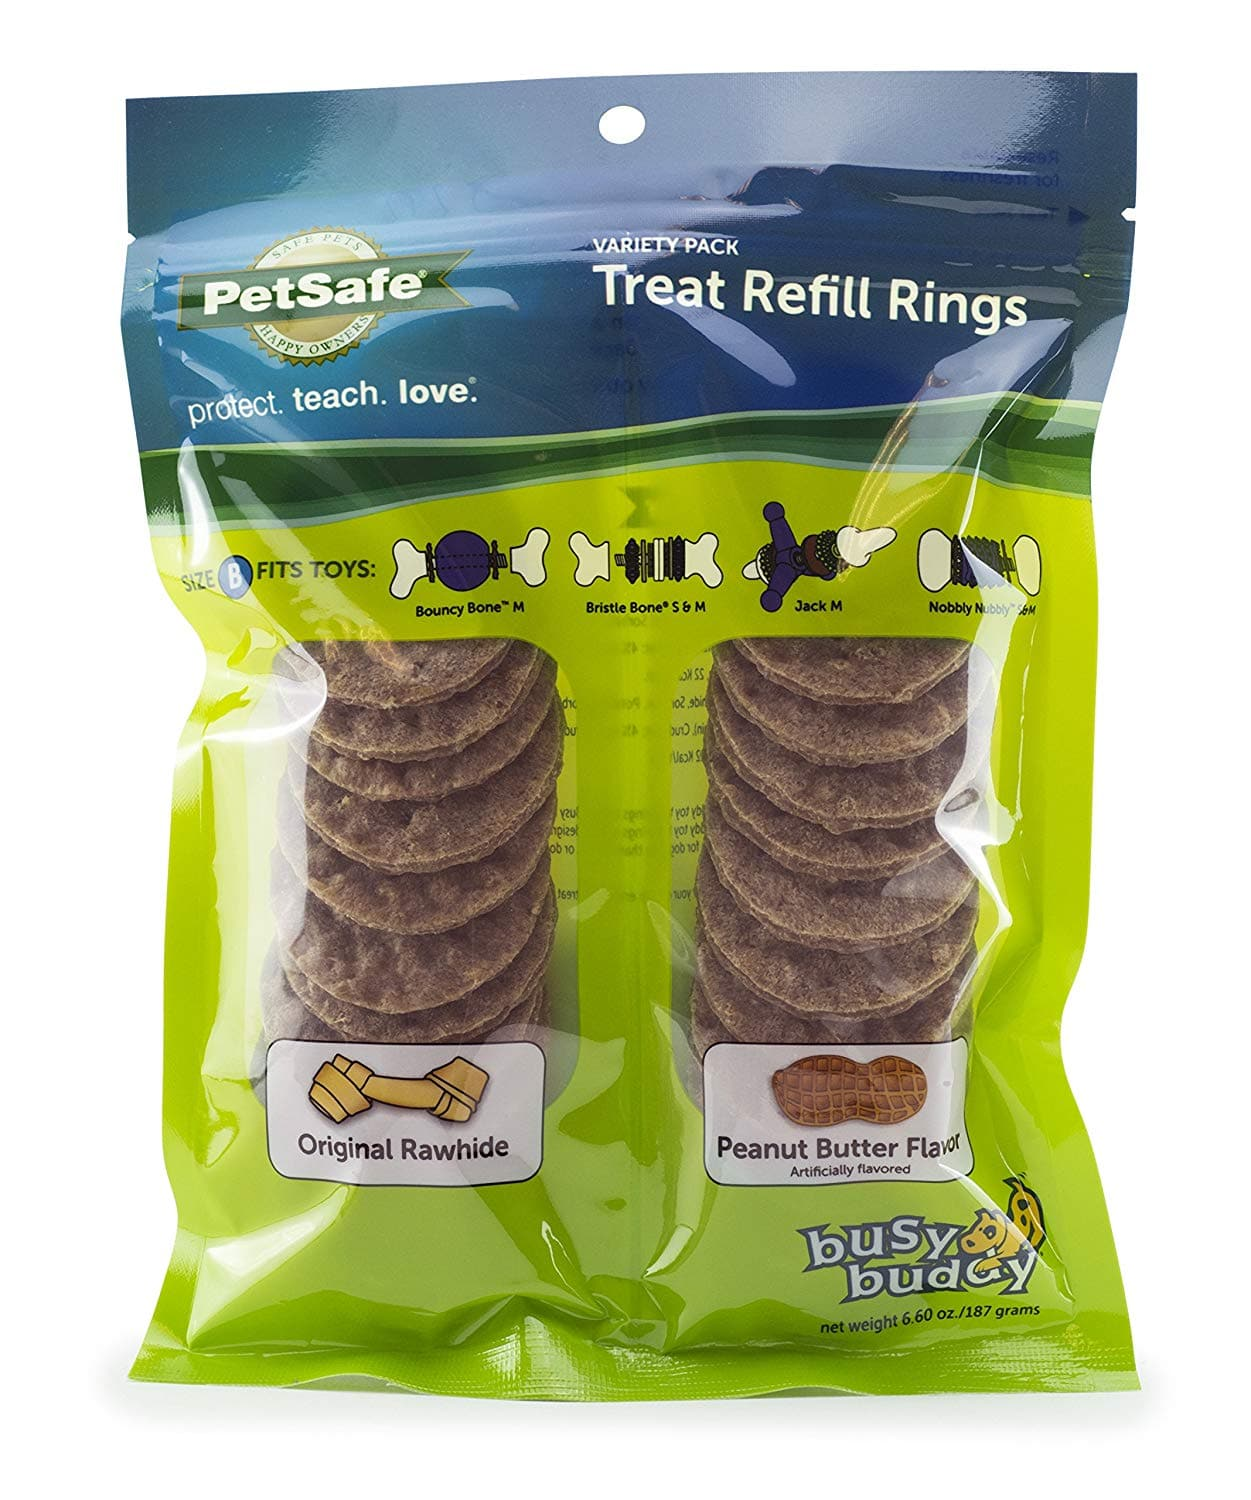 PetSafe Natural Rawhide Rings, Dog Toy Treat Ring Refills $5.42 with s/s